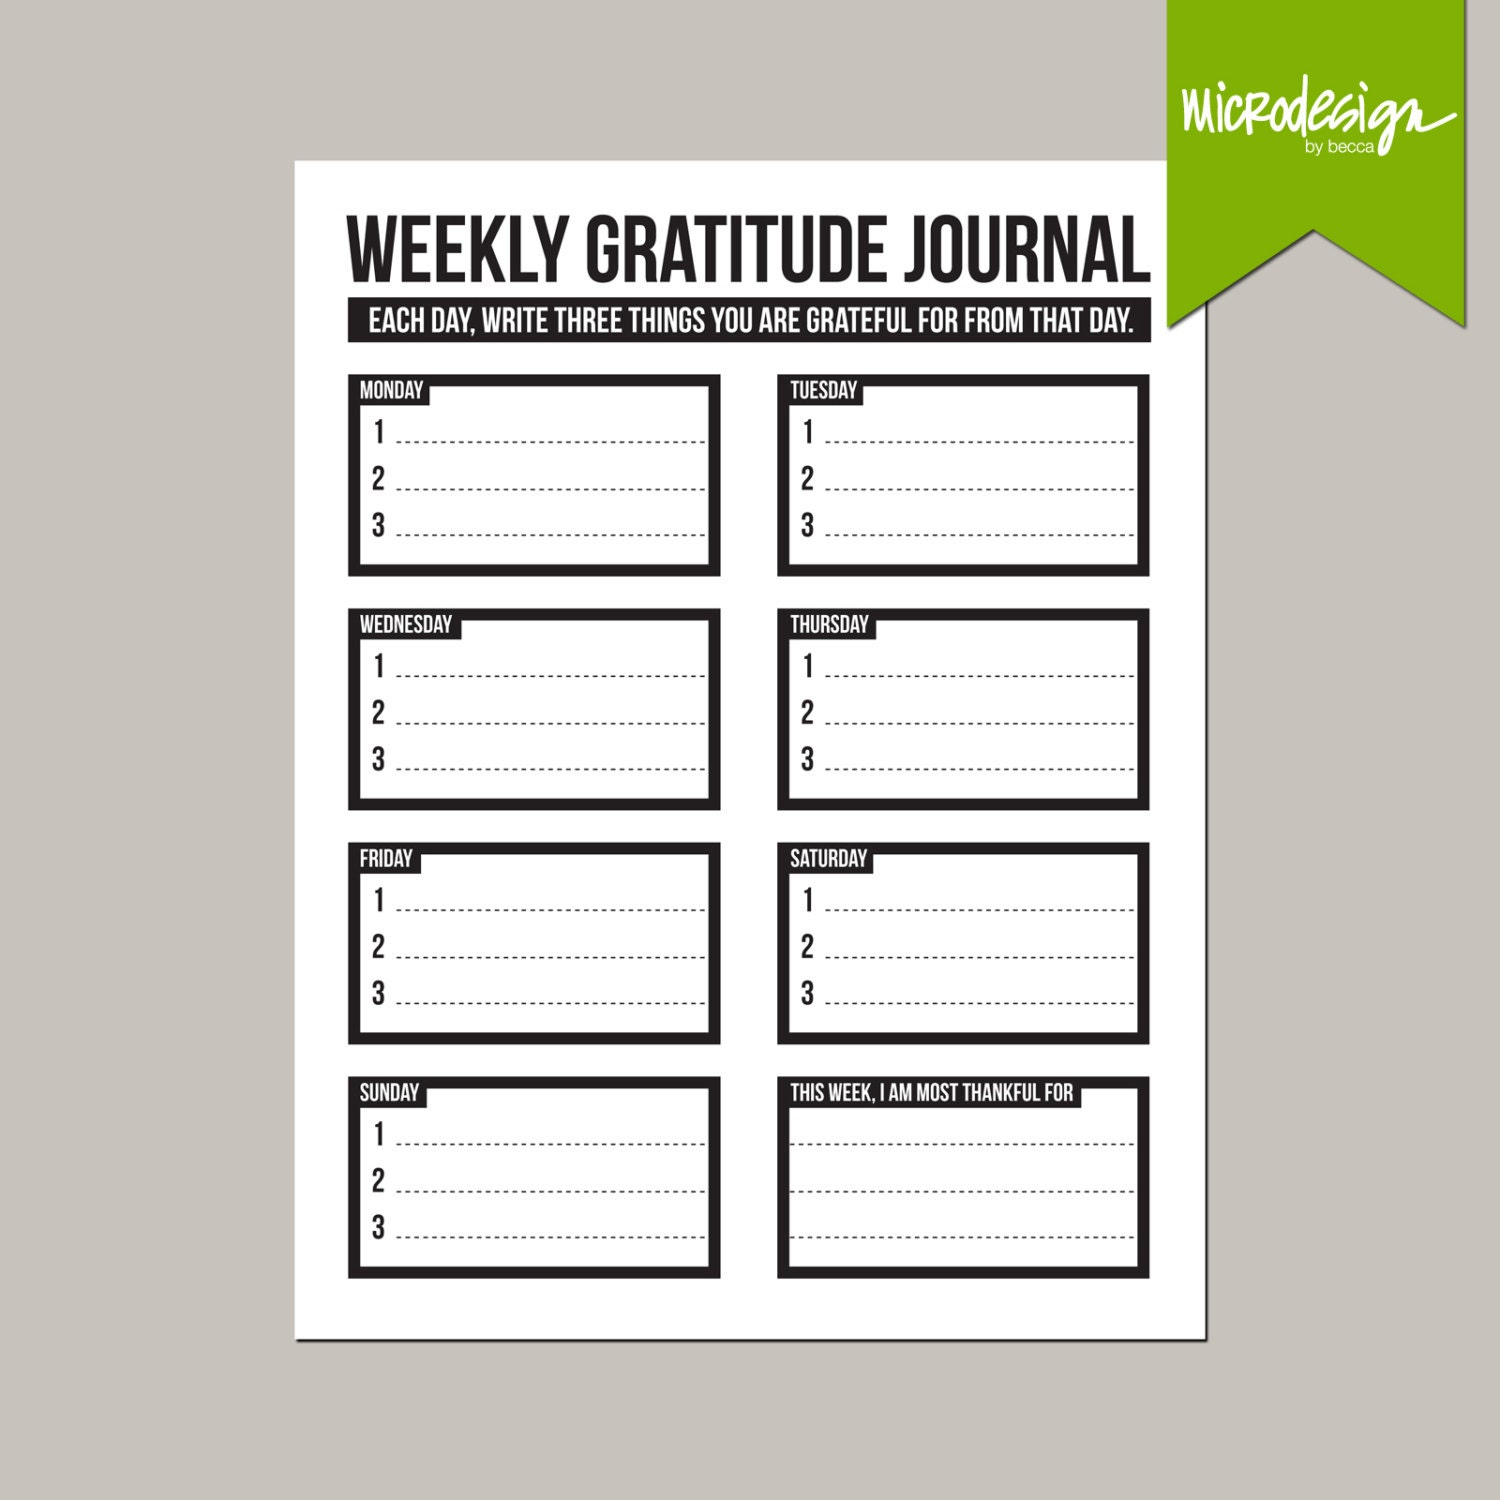 three little things: weekly gratitude journal